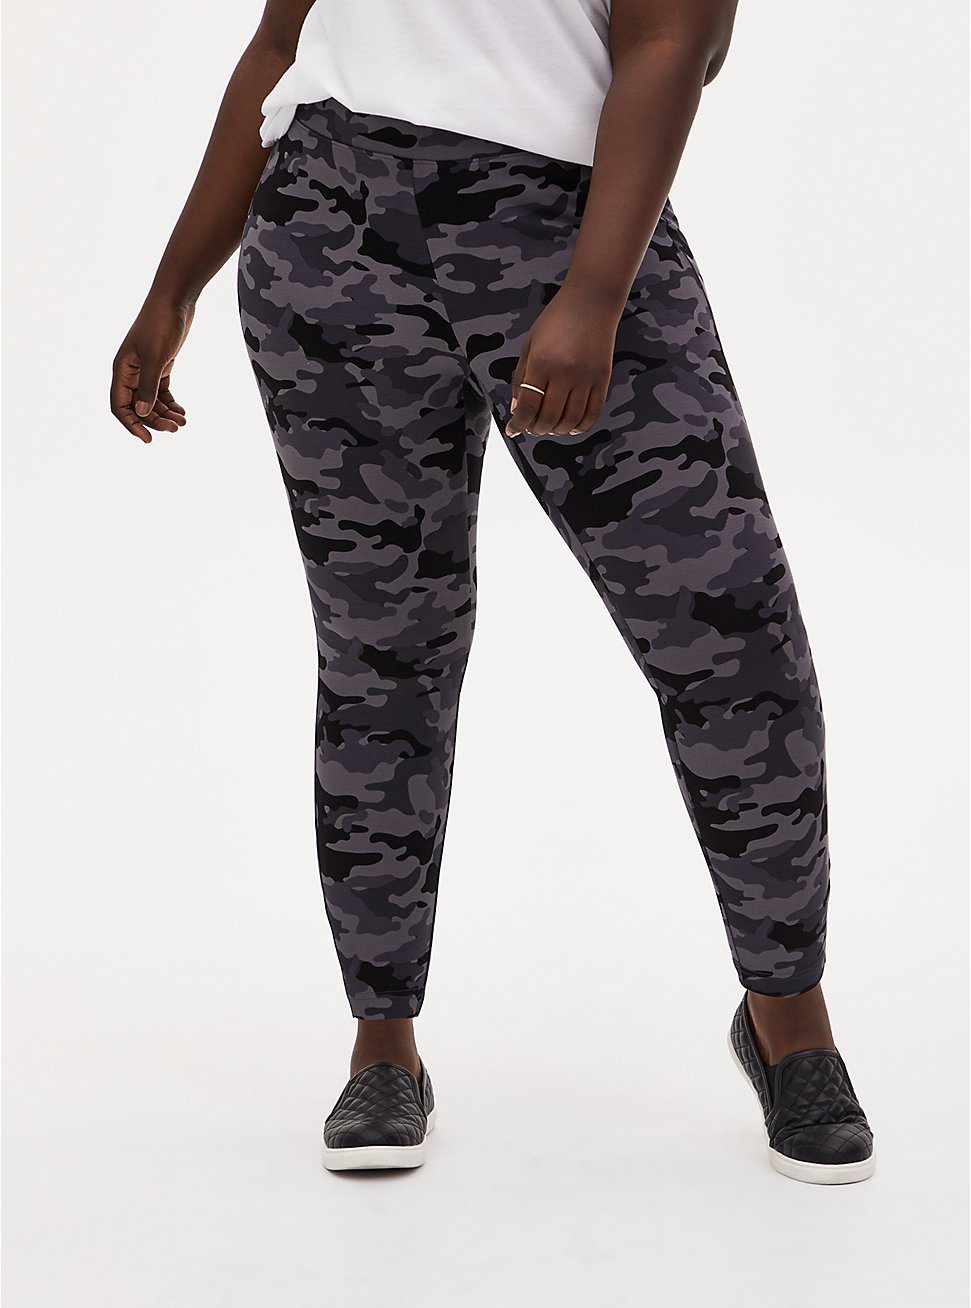 Studio Ponte Slim Fix Grey Camo Pull-On Pixie Pant, CAMO, hi-res